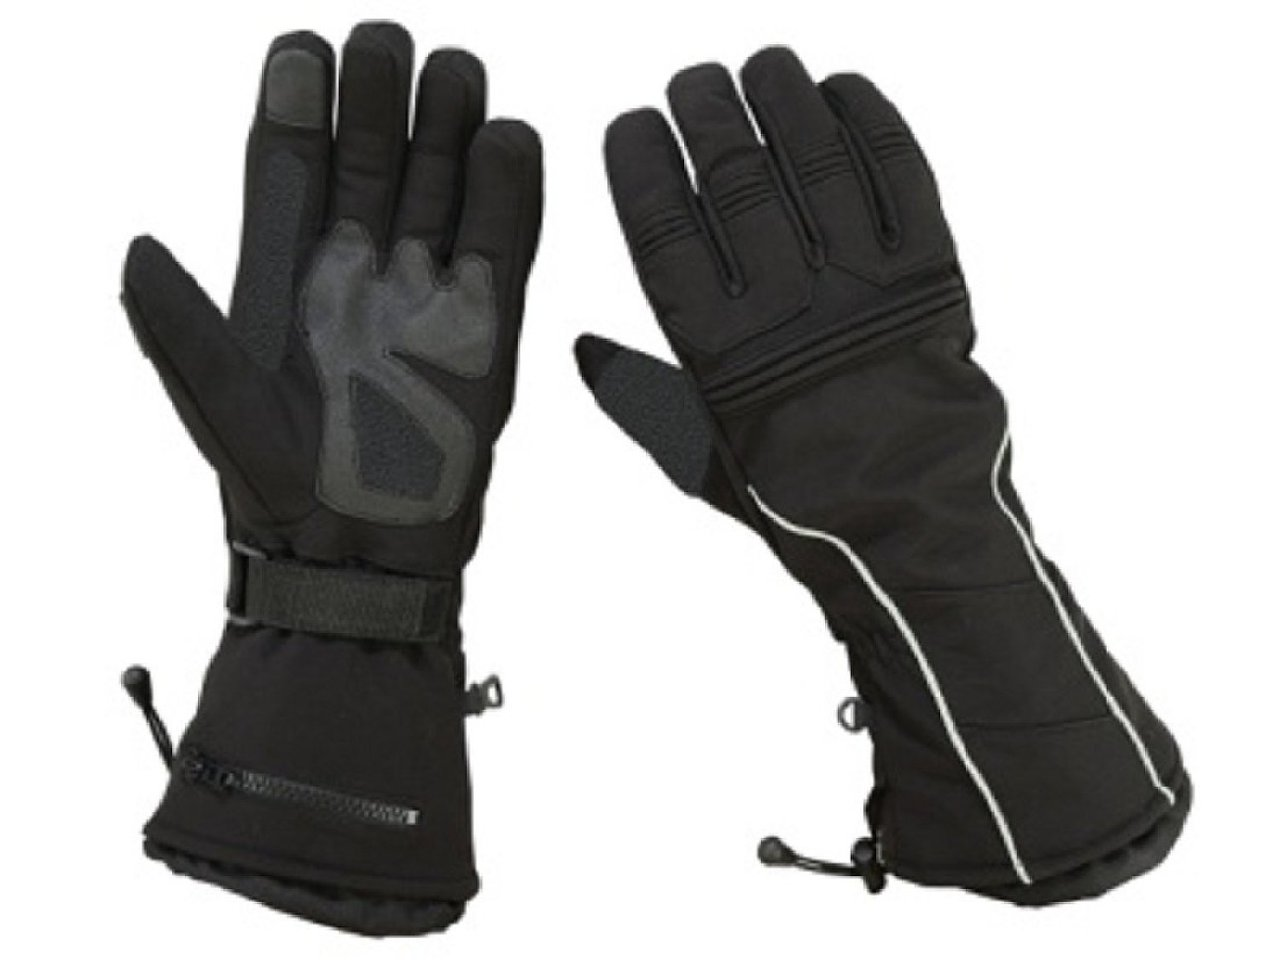 Gauntlet Snowmobile Motorcycle Gloves Men's Textile Ski Driving